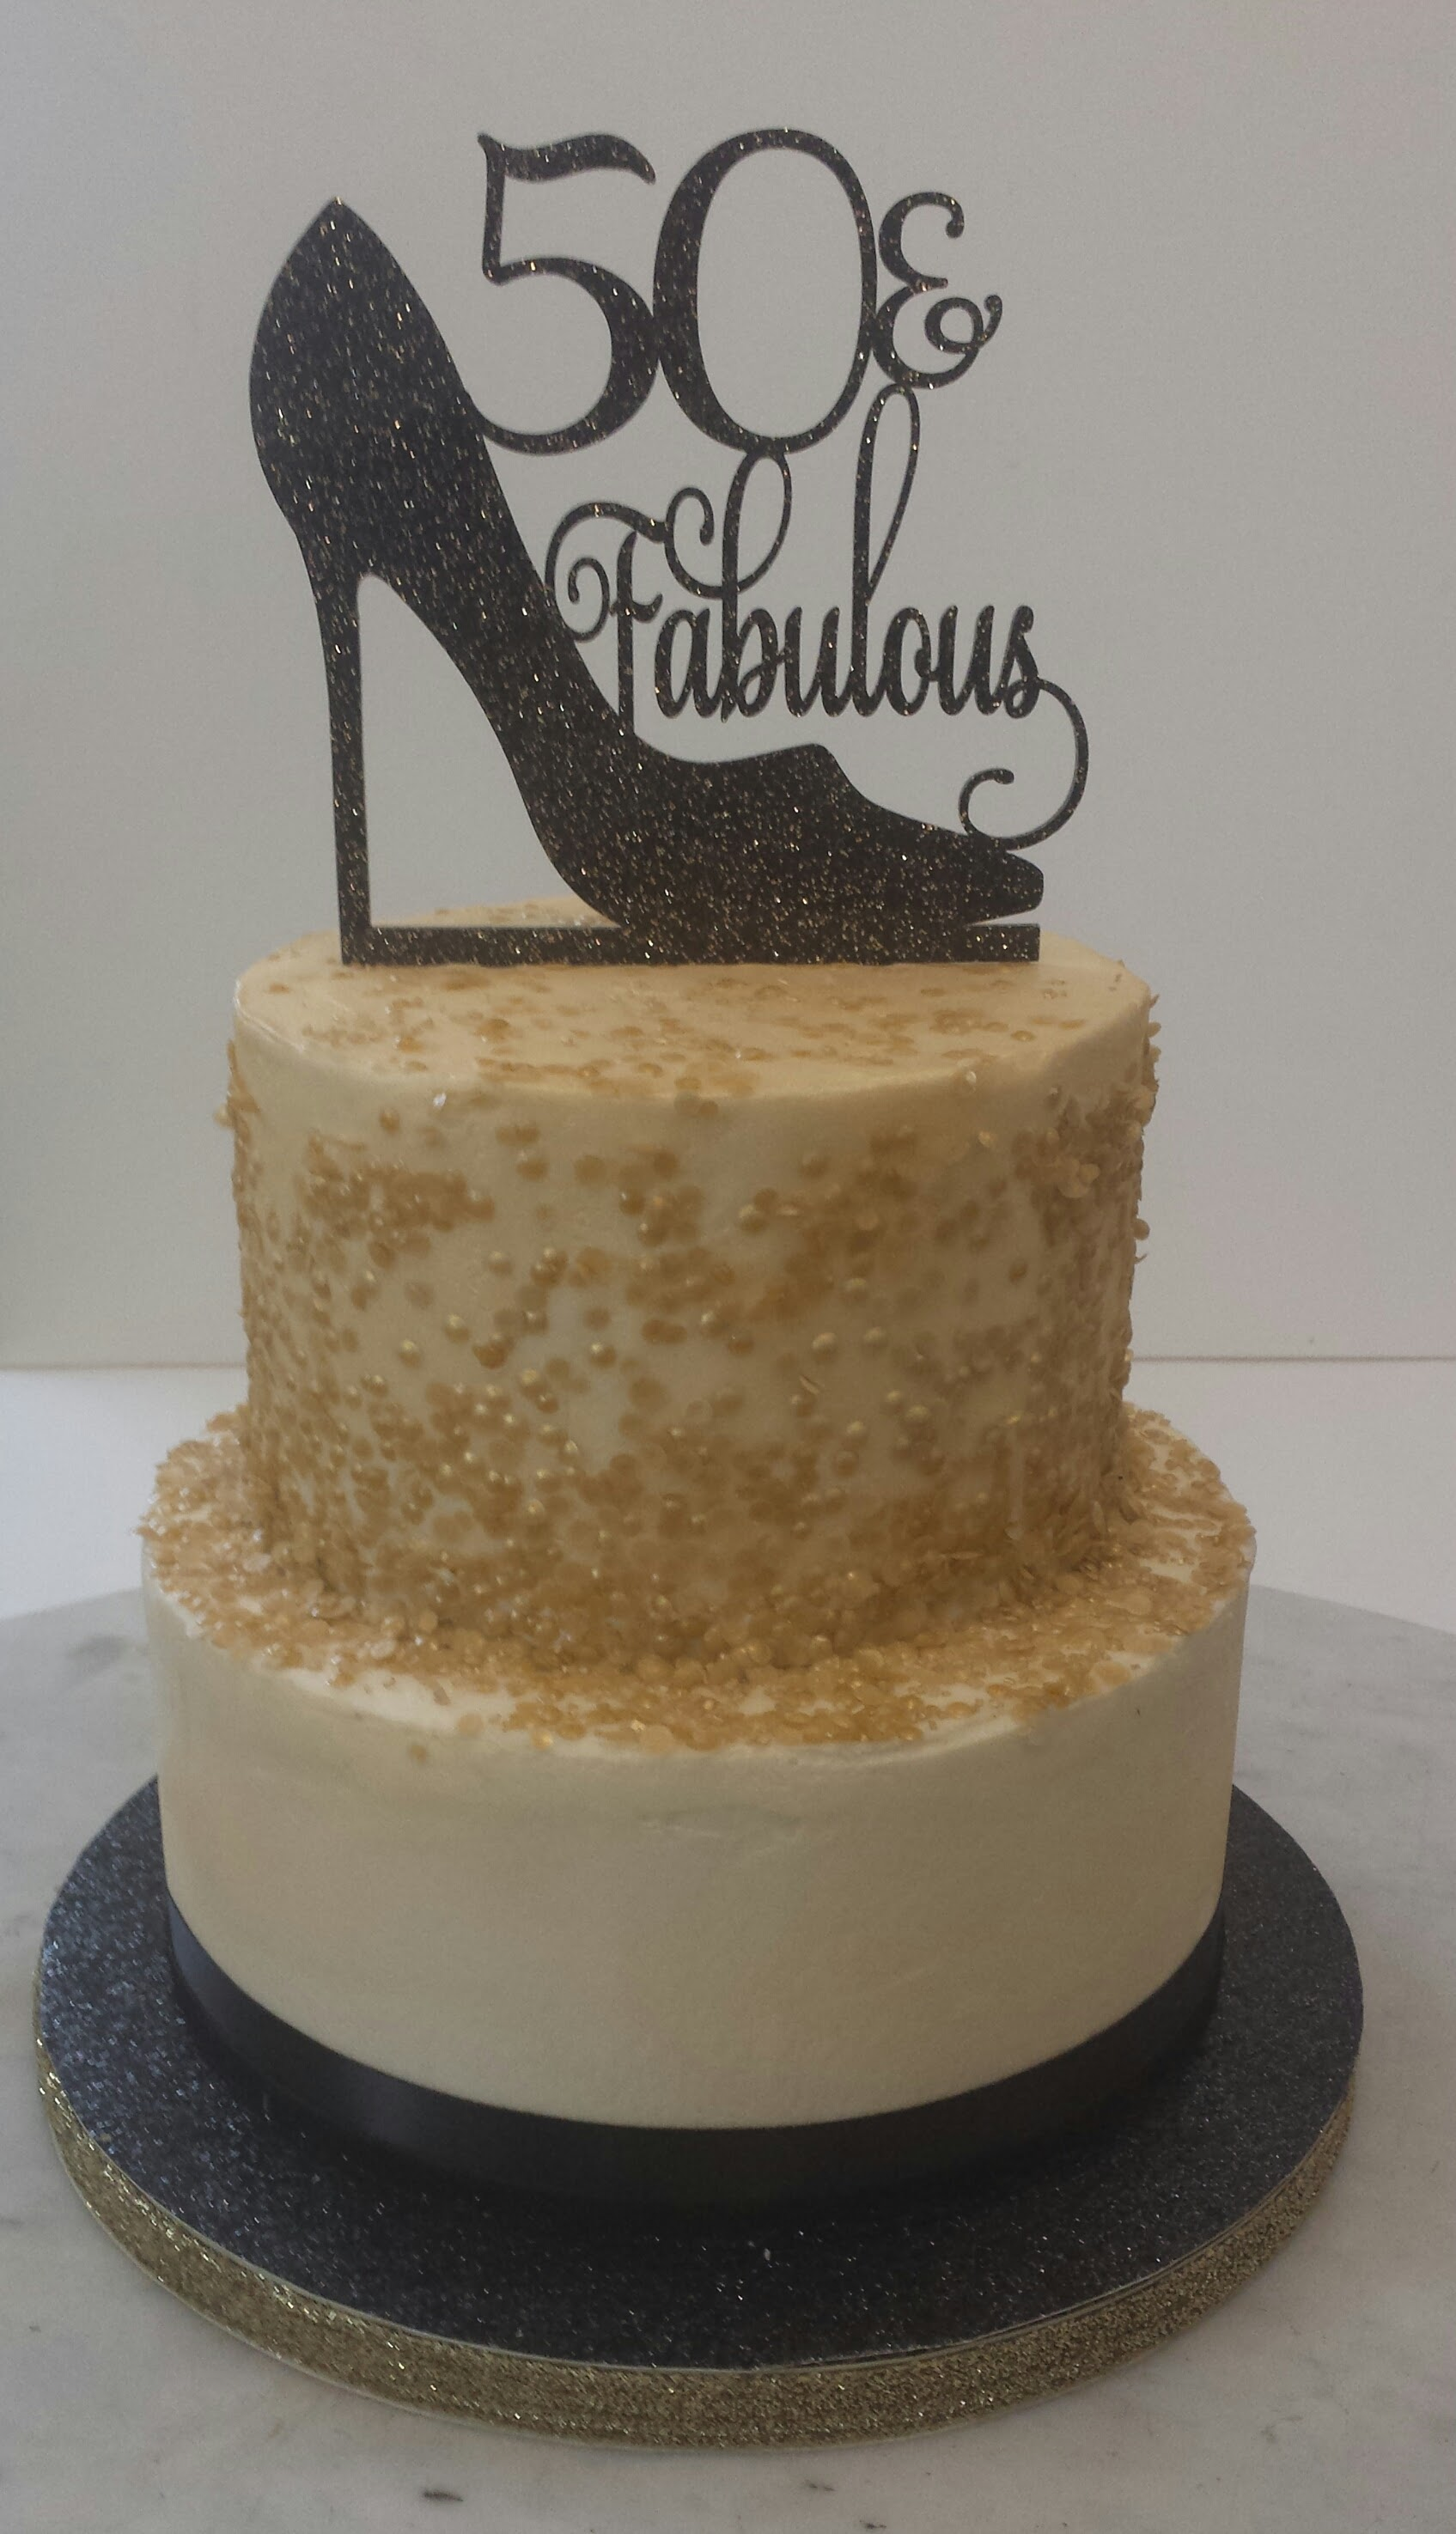 Two-tier vanilla birthday cake with edible gold sequins and a fabulous cake topper.